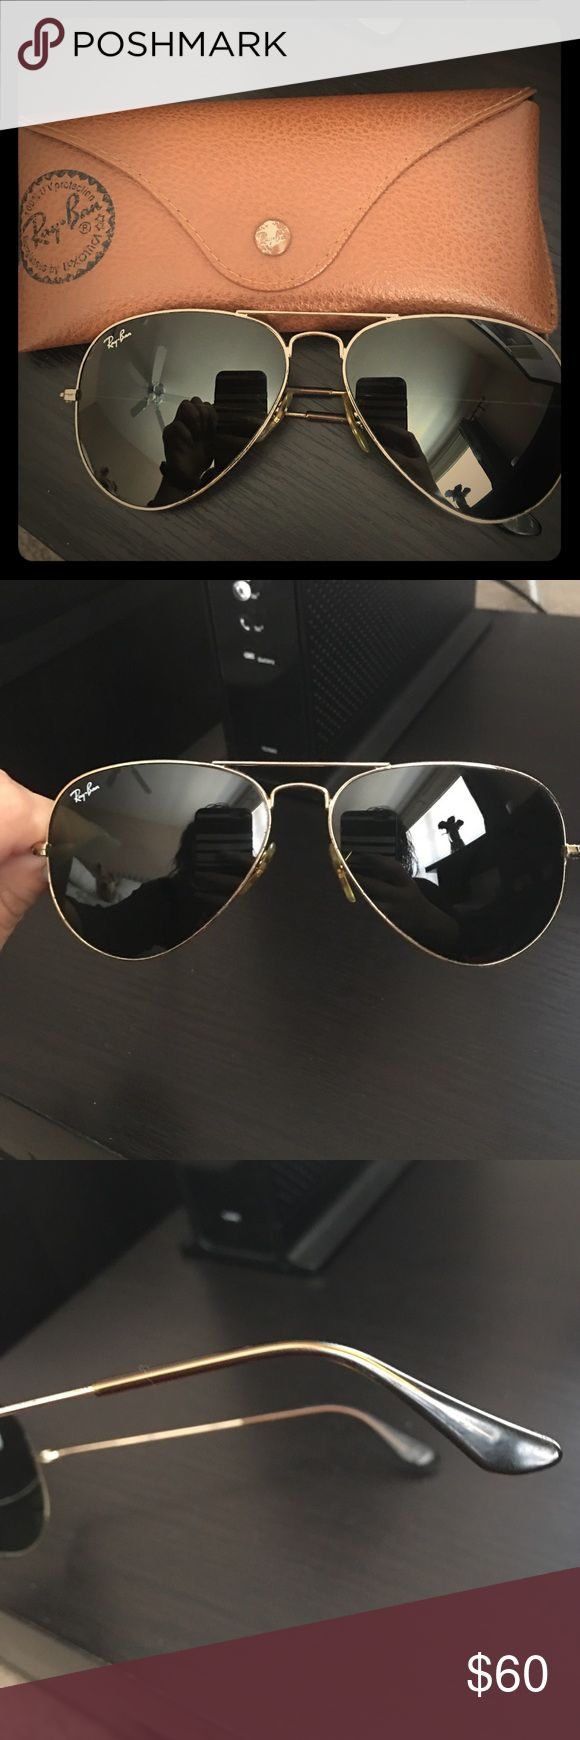 do ray ban prescription glasses come with a case  ray ban gold aviators dark green lenses. recently replaced does not have scratches on lenses